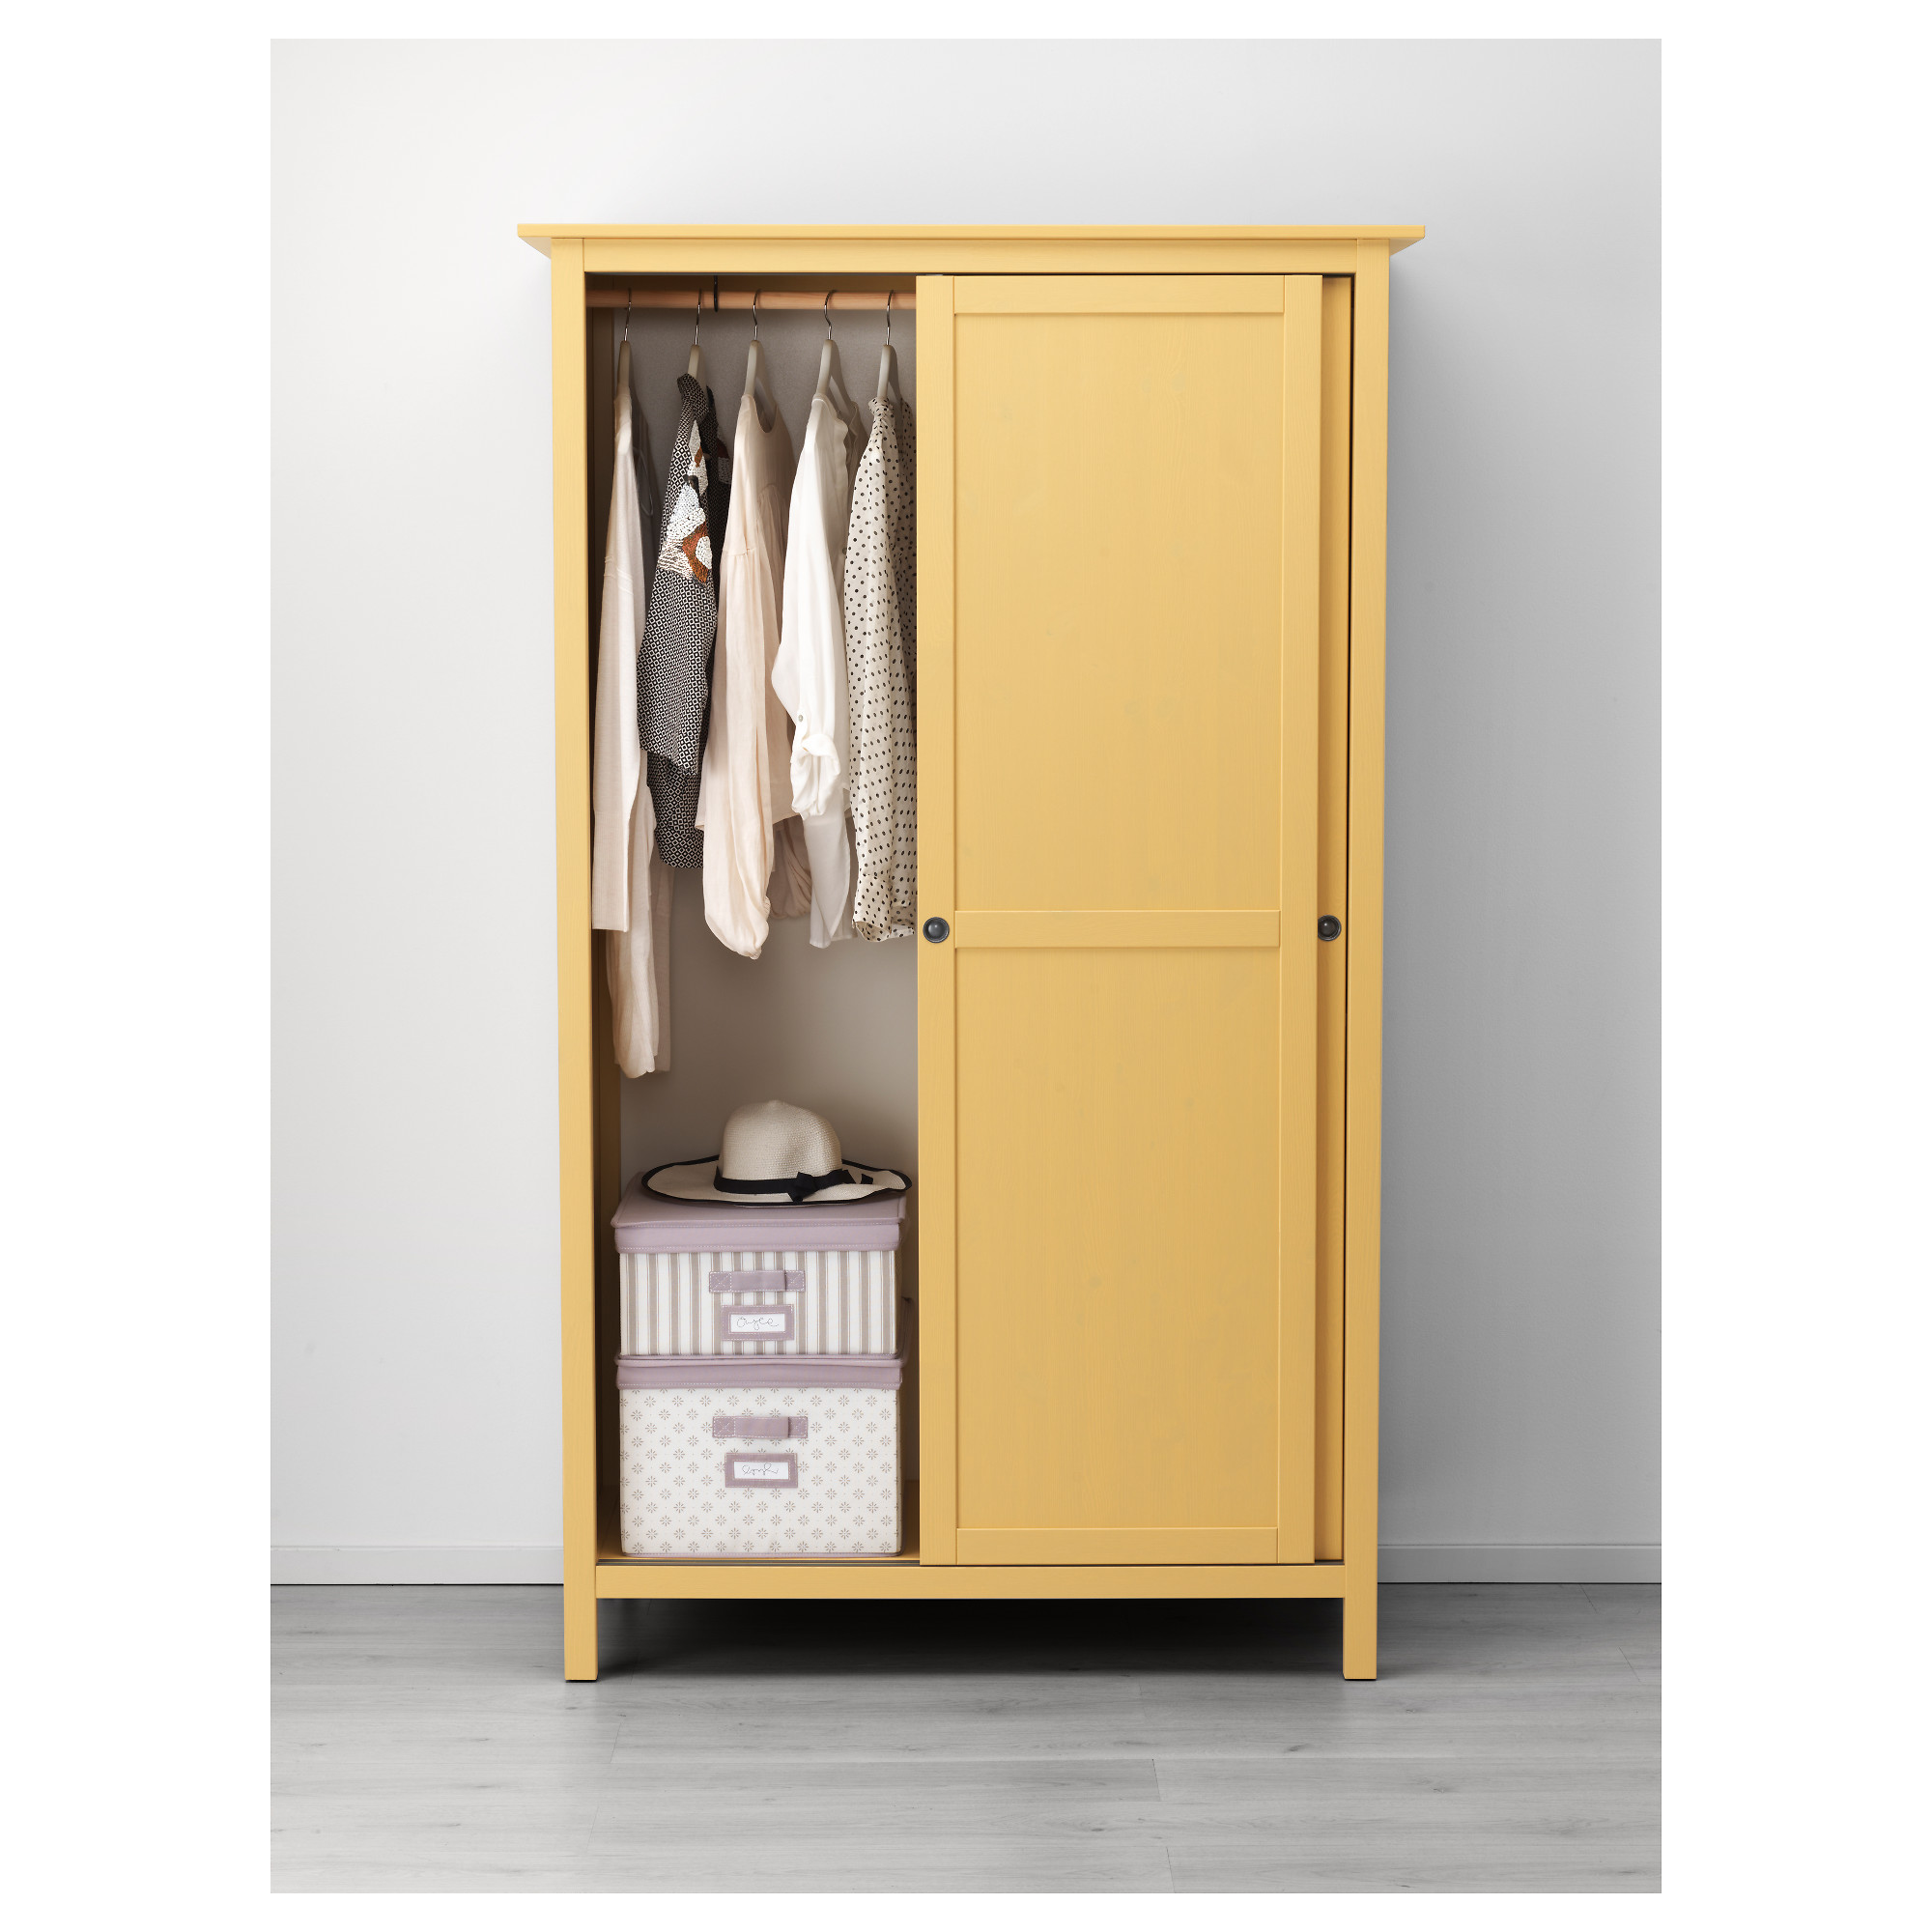 free details shipping about with designs sliding cm doors wide and door wardrobe pax ikea pm high